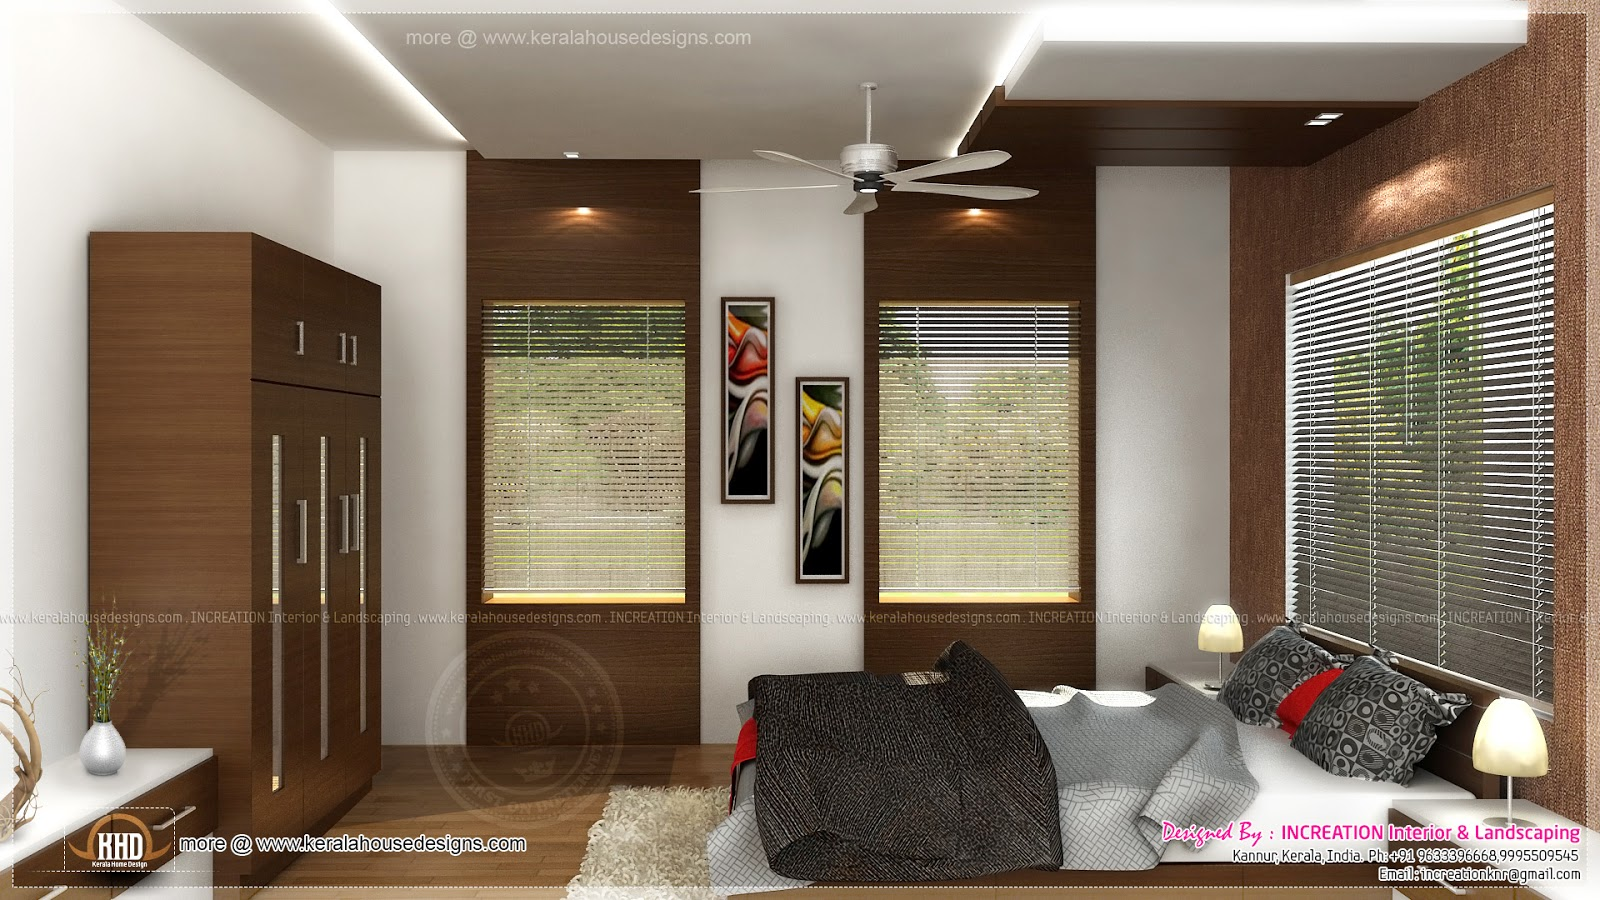 Interior designs from kannur kerala home kerala plans for Inside home design pictures